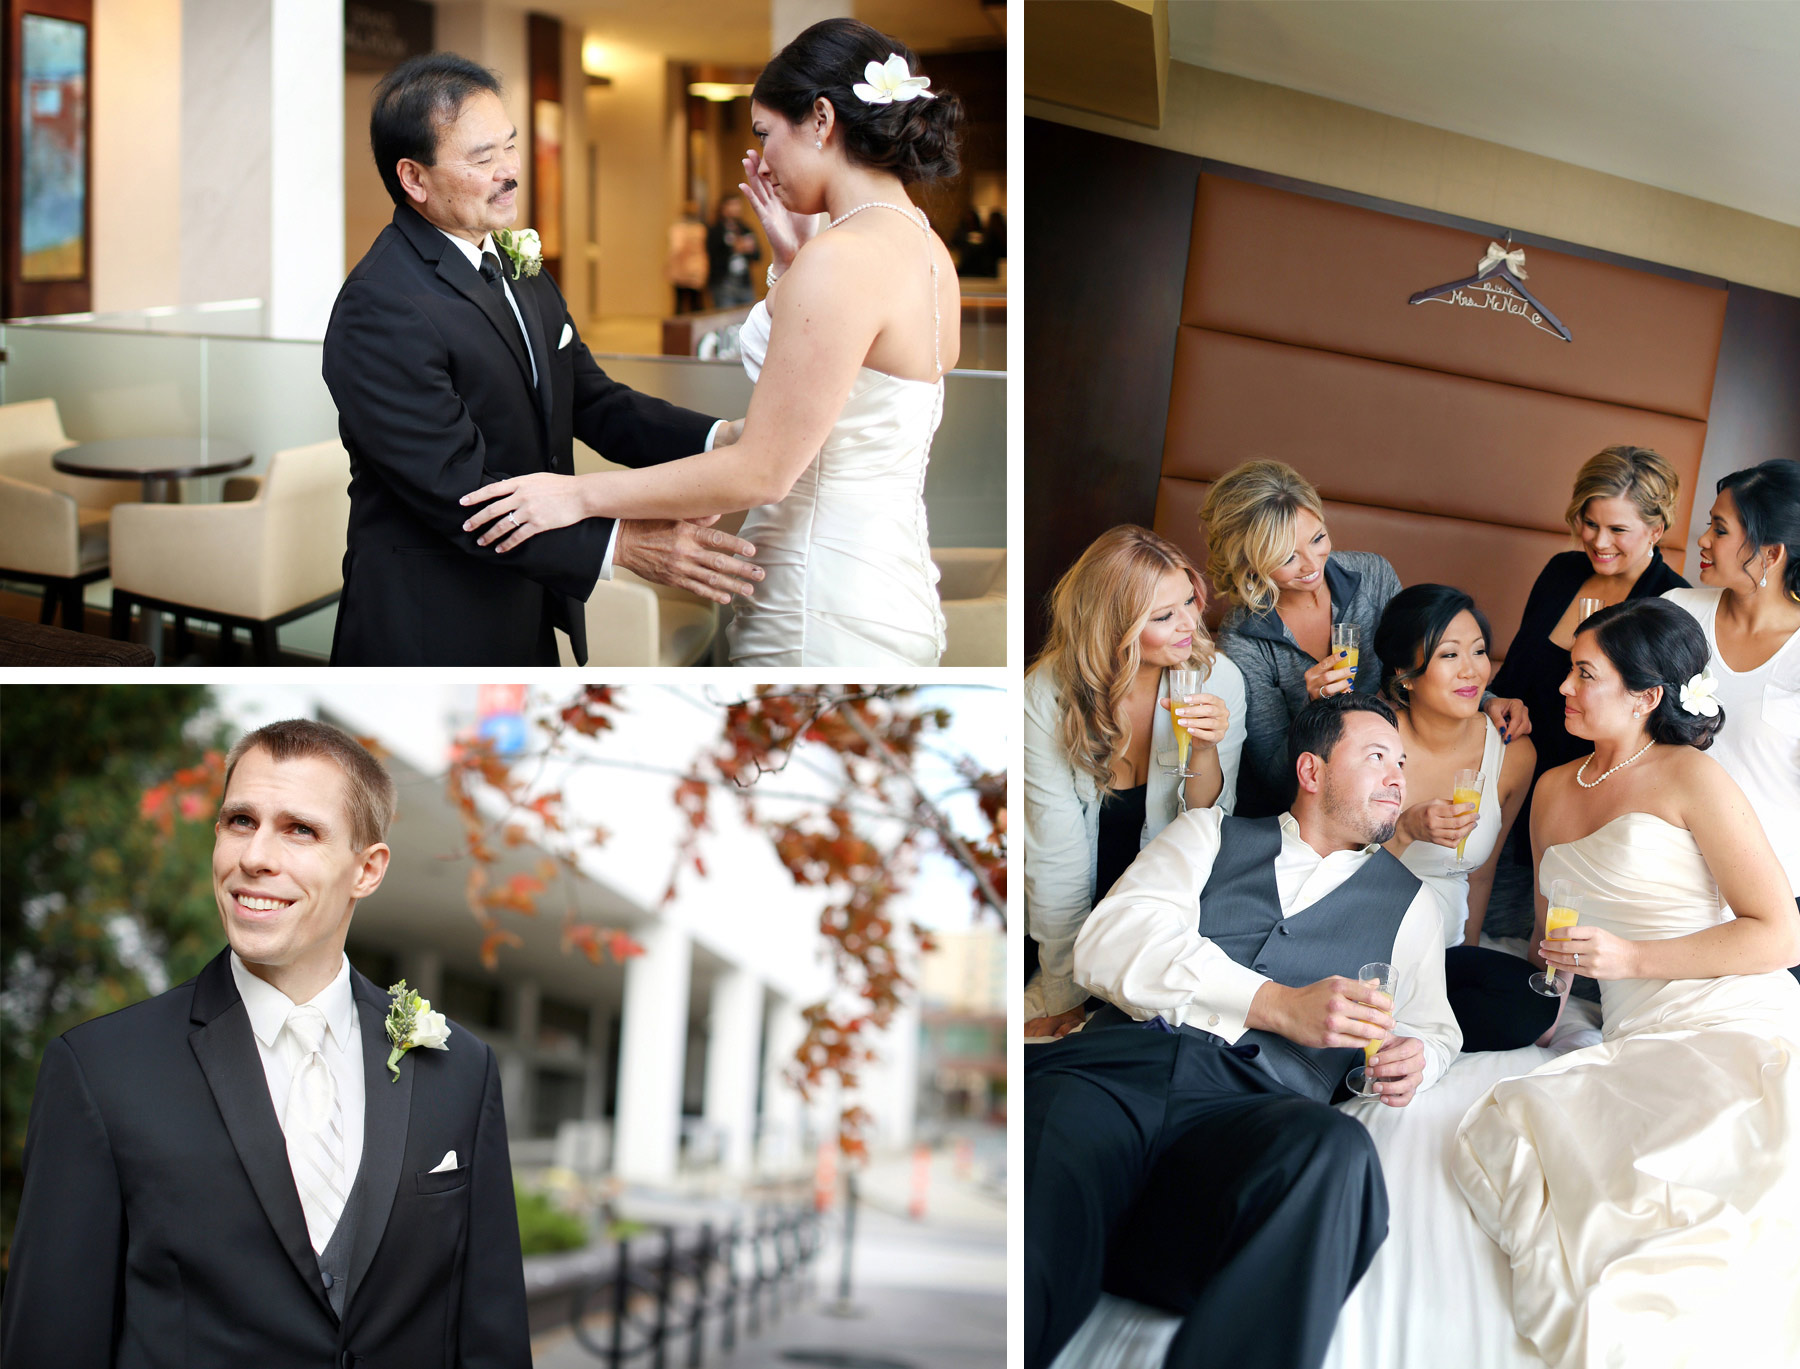 05-Minneapolis-Minnesota-Wedding-Photographer-by-Andrew-Vick-Photography-Fall-Autumn-Millennium-Hotel-Getting-Ready-Bride-Groom-Bridesmaids-Father-Reveal-Moment-Mimosas-Amanda-and-Cary.jpg